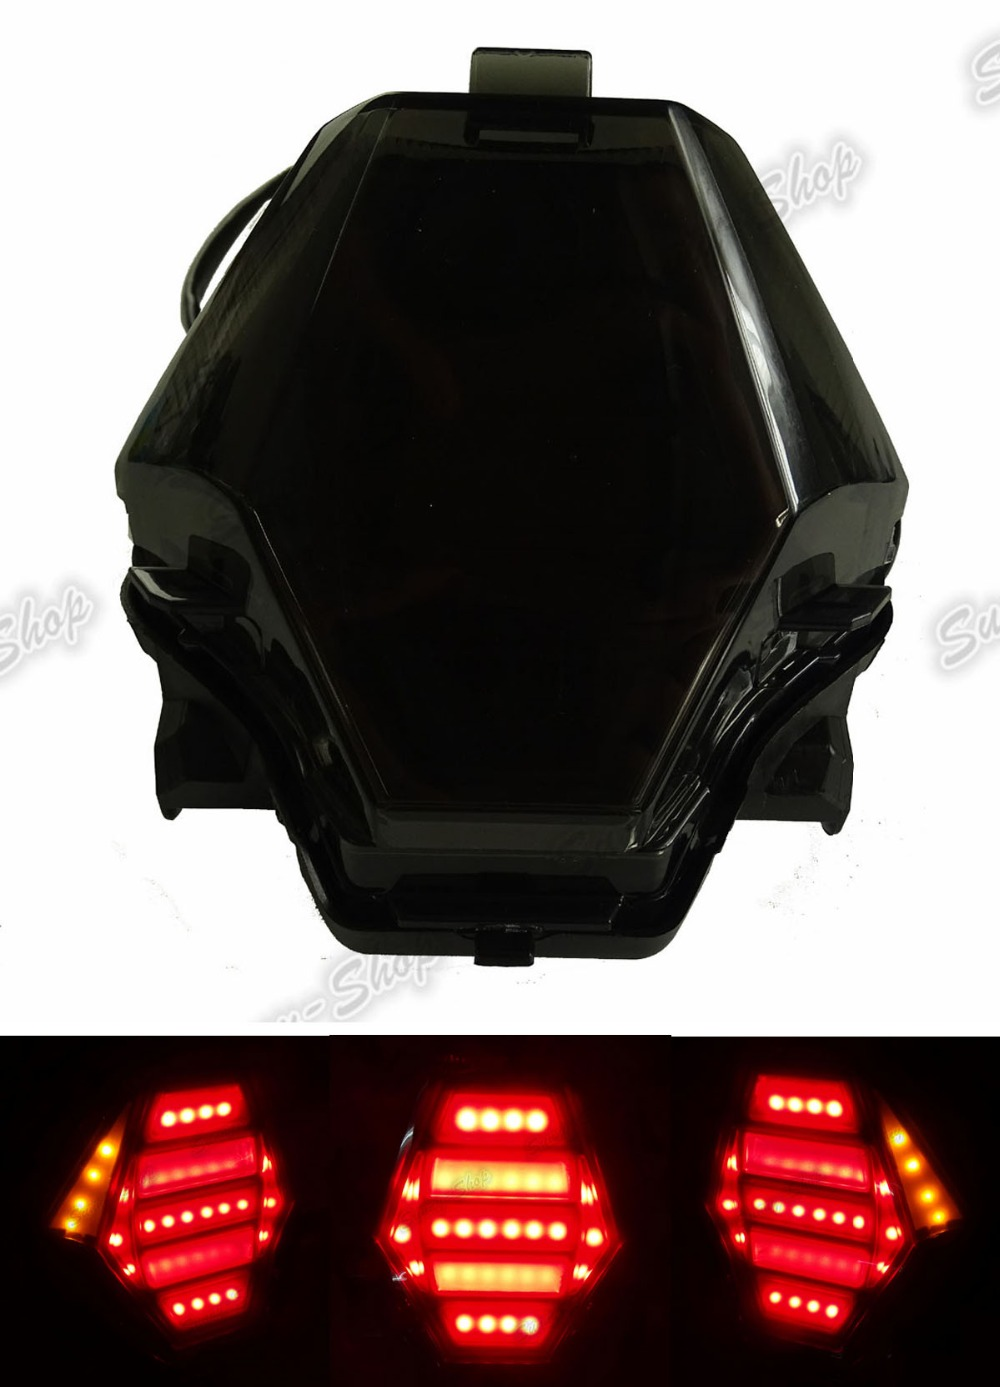 Motorcycle Rear Taillight Tail Brake Turn Signals Integrated Led Light Smoke For 2013 2014 2015 2016 Yamaha YZF R3 R25 for geely mk1 mk2 rear taillight brake lights turn signals light